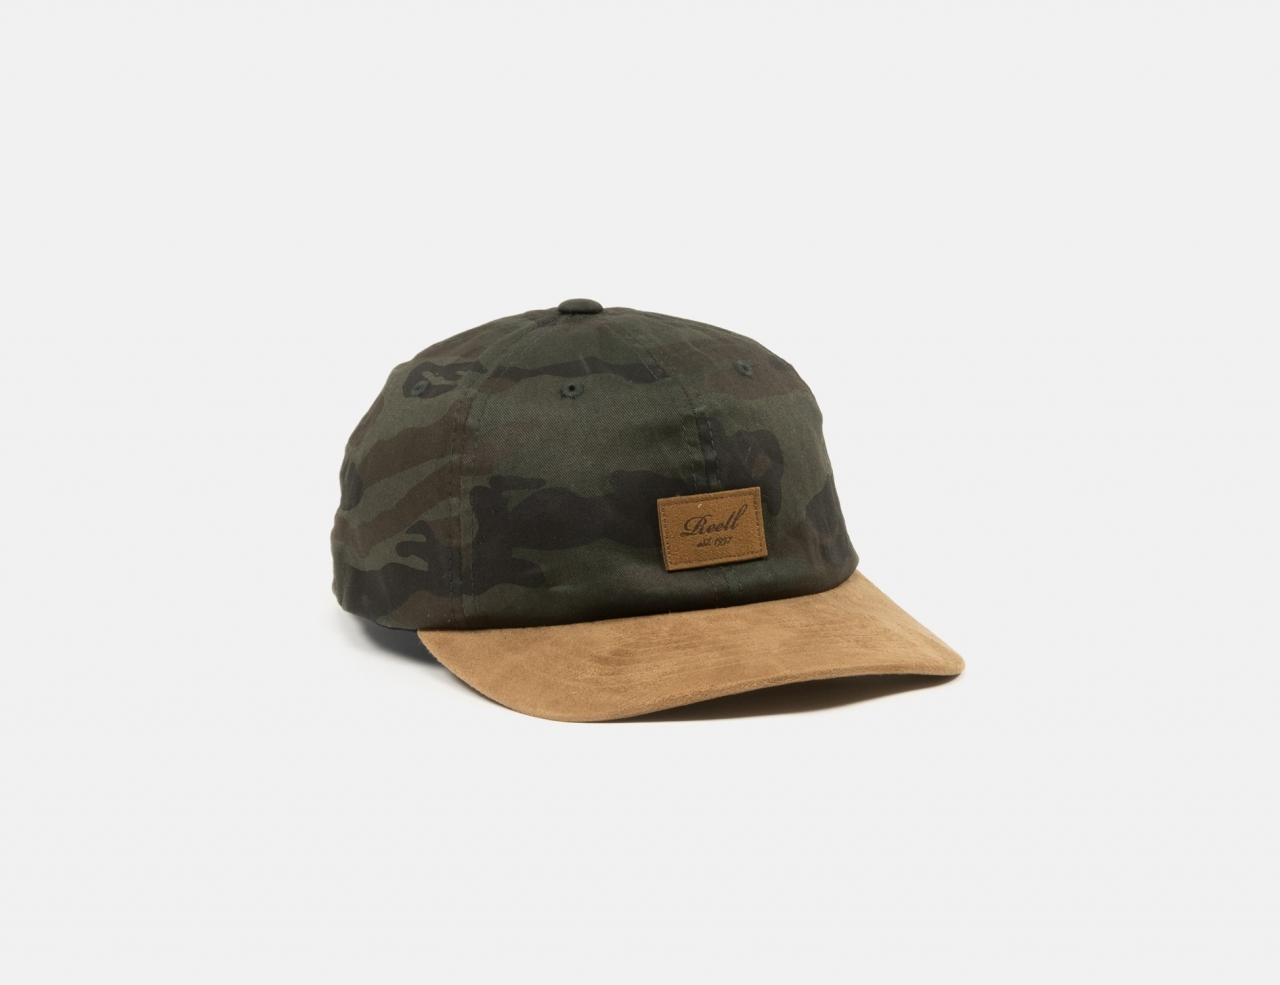 Reell Jeans Curved Suede Dad Cap - Olive